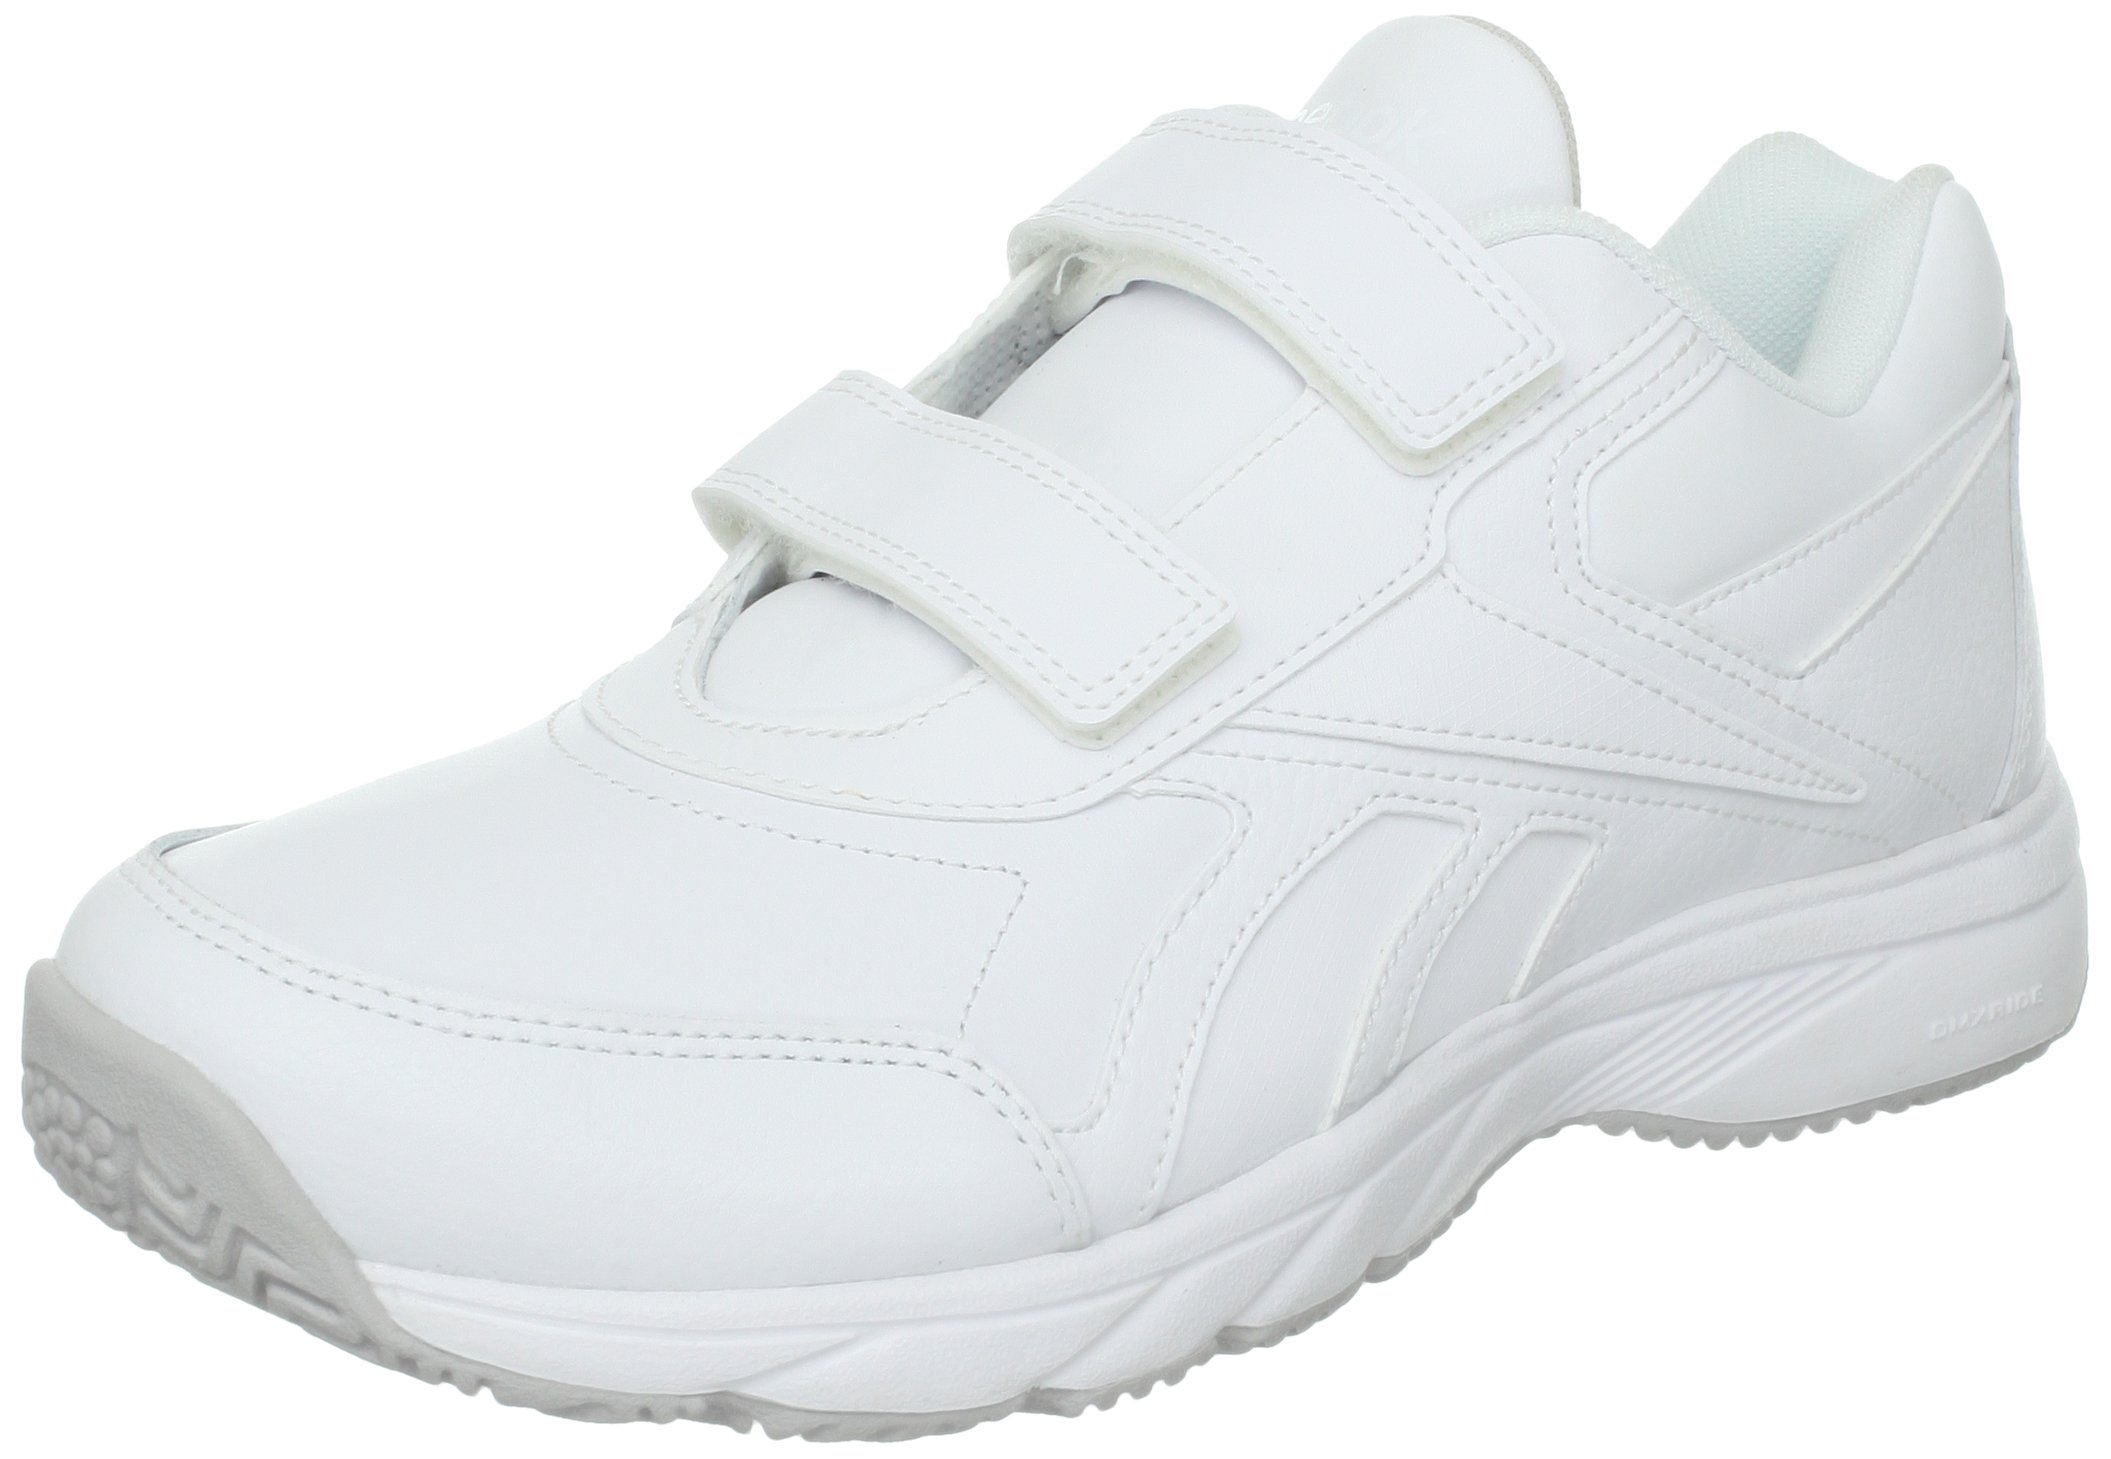 Reebok Women's Work N Cushion KC Walking Shoe,White,8.5 D US